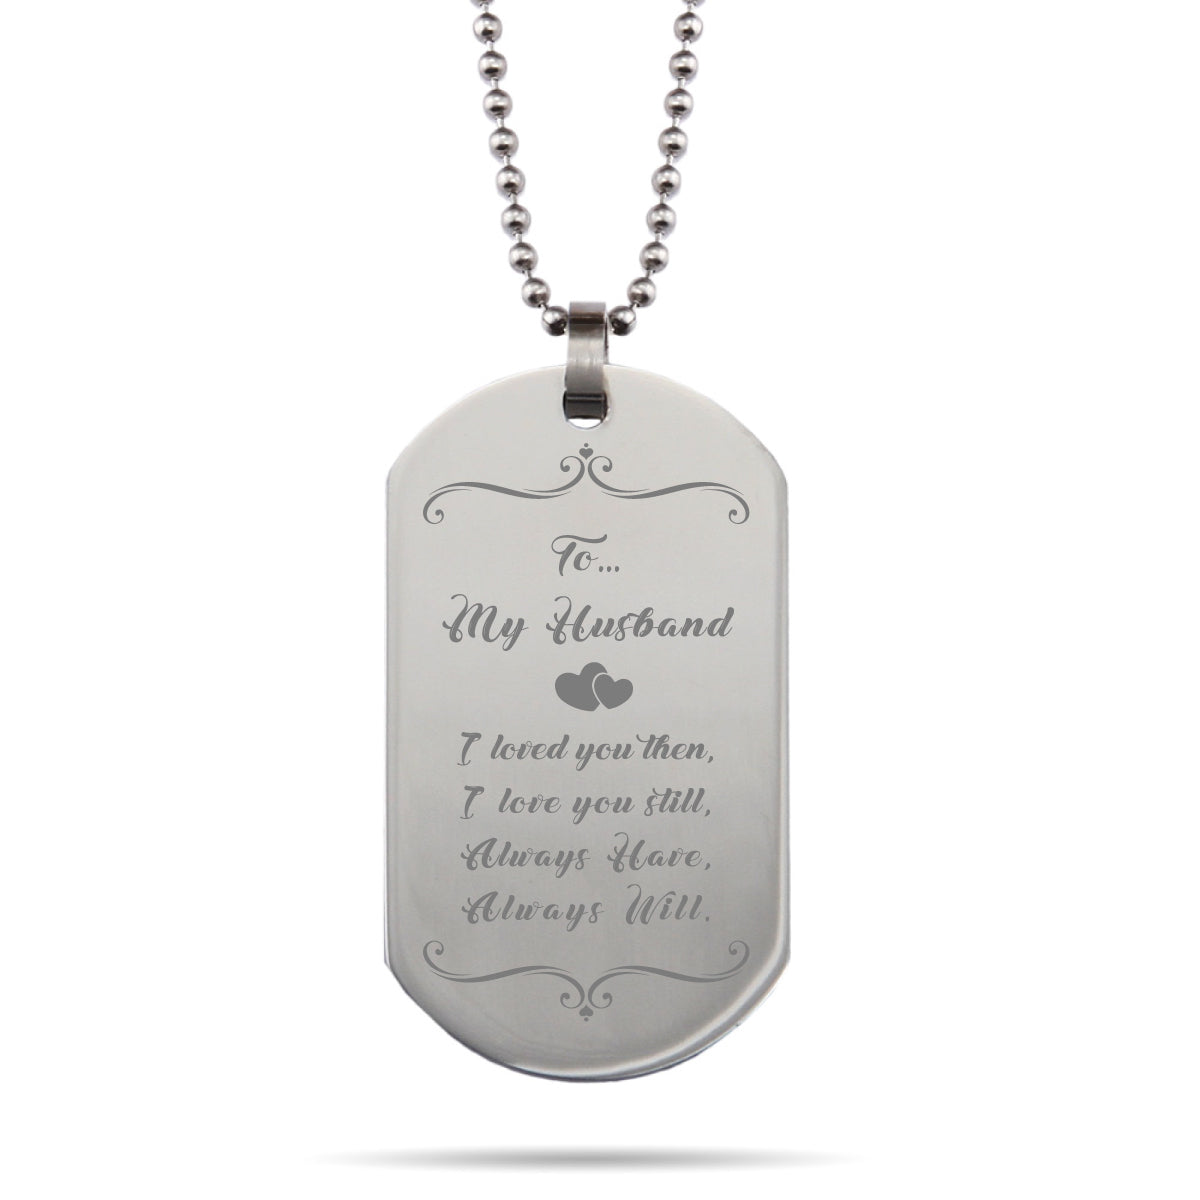 products transformation husband necklace and sons awesomesons wife from asset awesome to bm